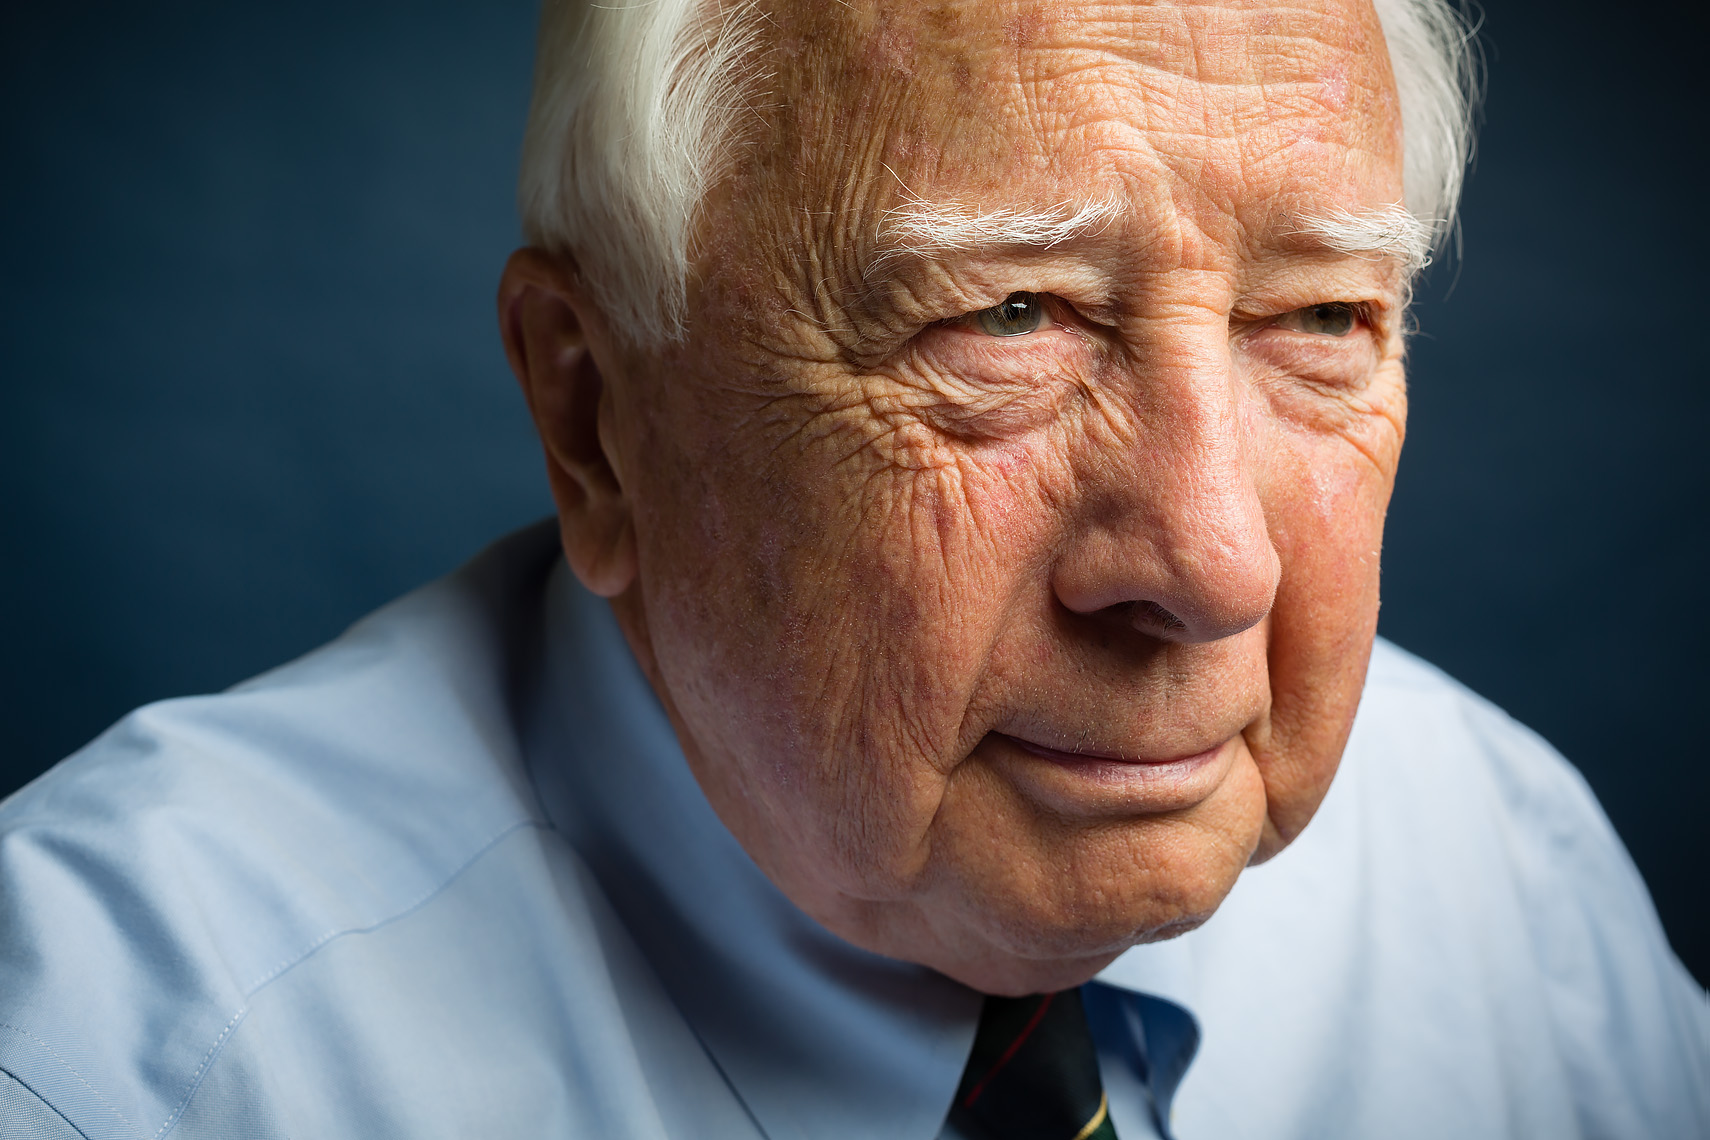 DAVID MCCULLOUGH, Author/Historian